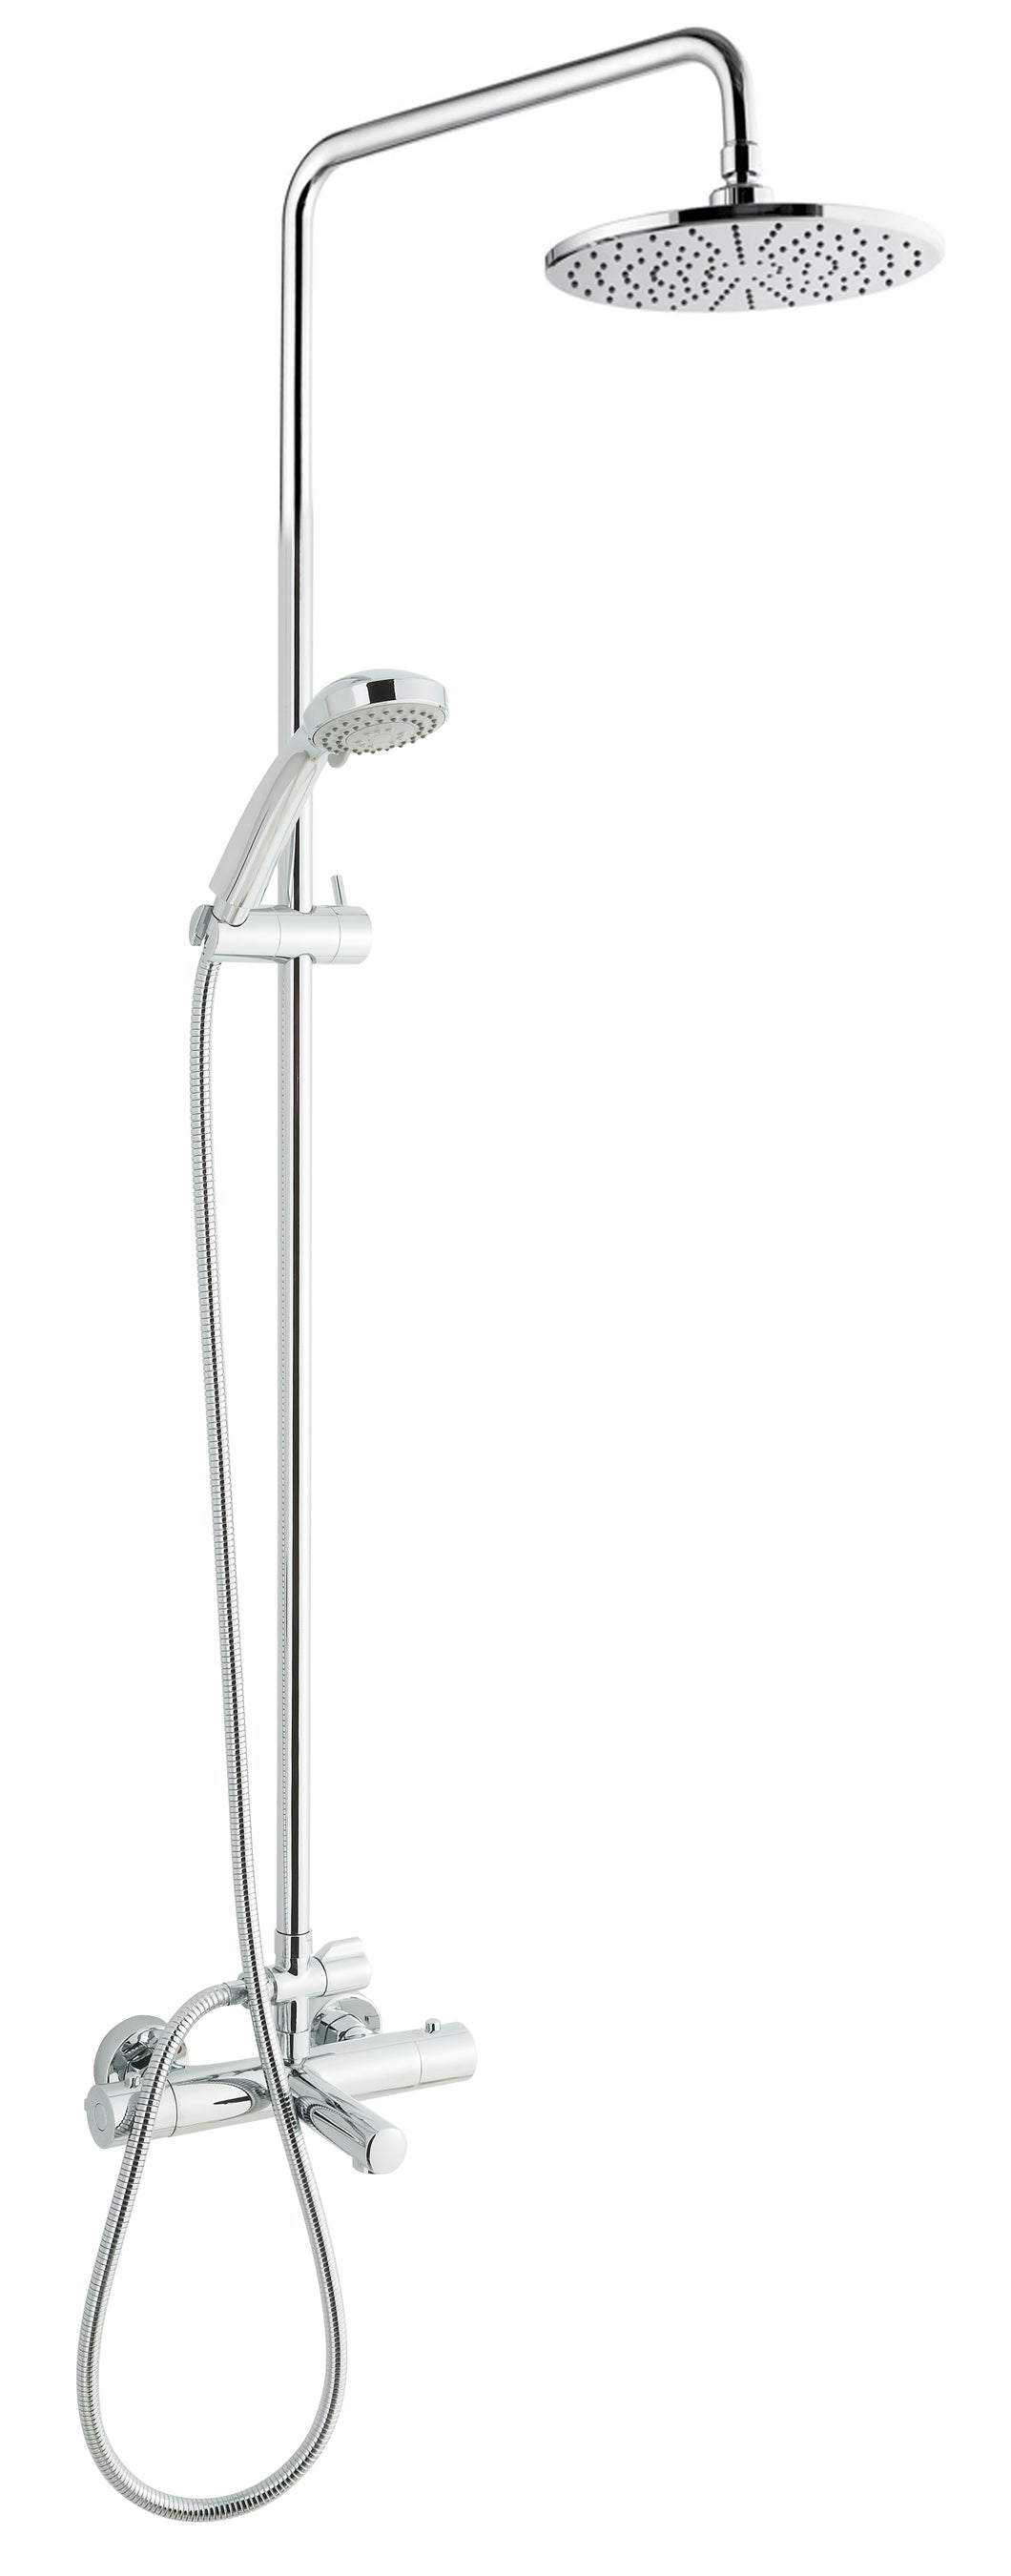 Thermostatic Shower Pole with Overhead Shower Hand Shower and Bath Spout [1275]